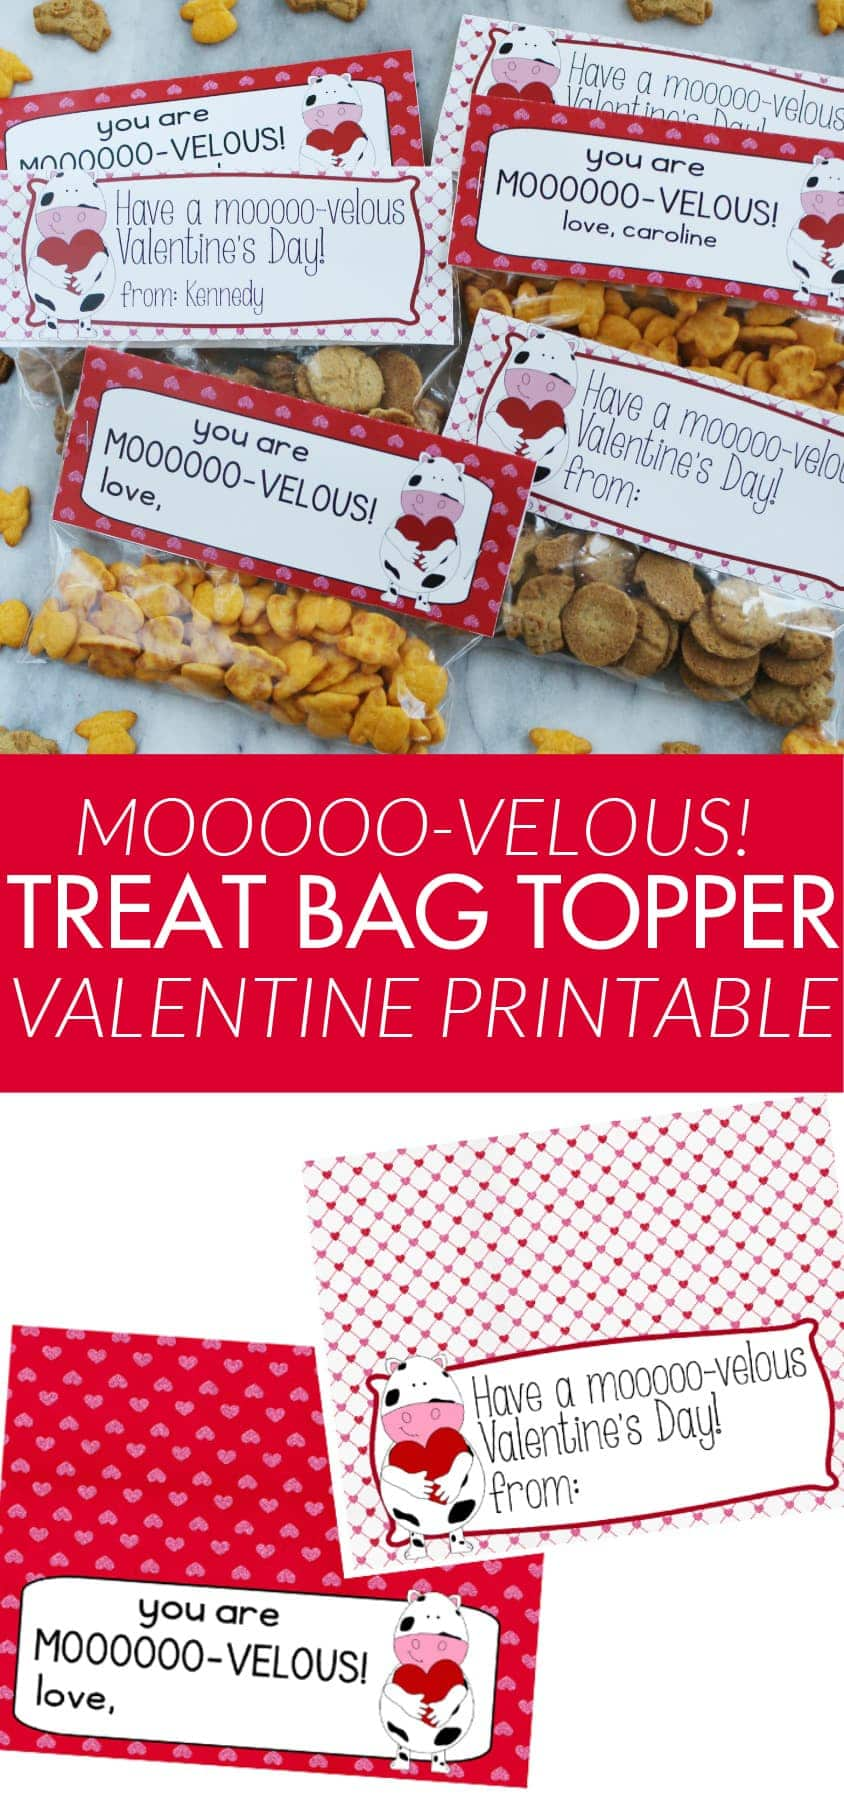 Free Valentine Treat Bag Topper Printable - great for class parties, and no candy!